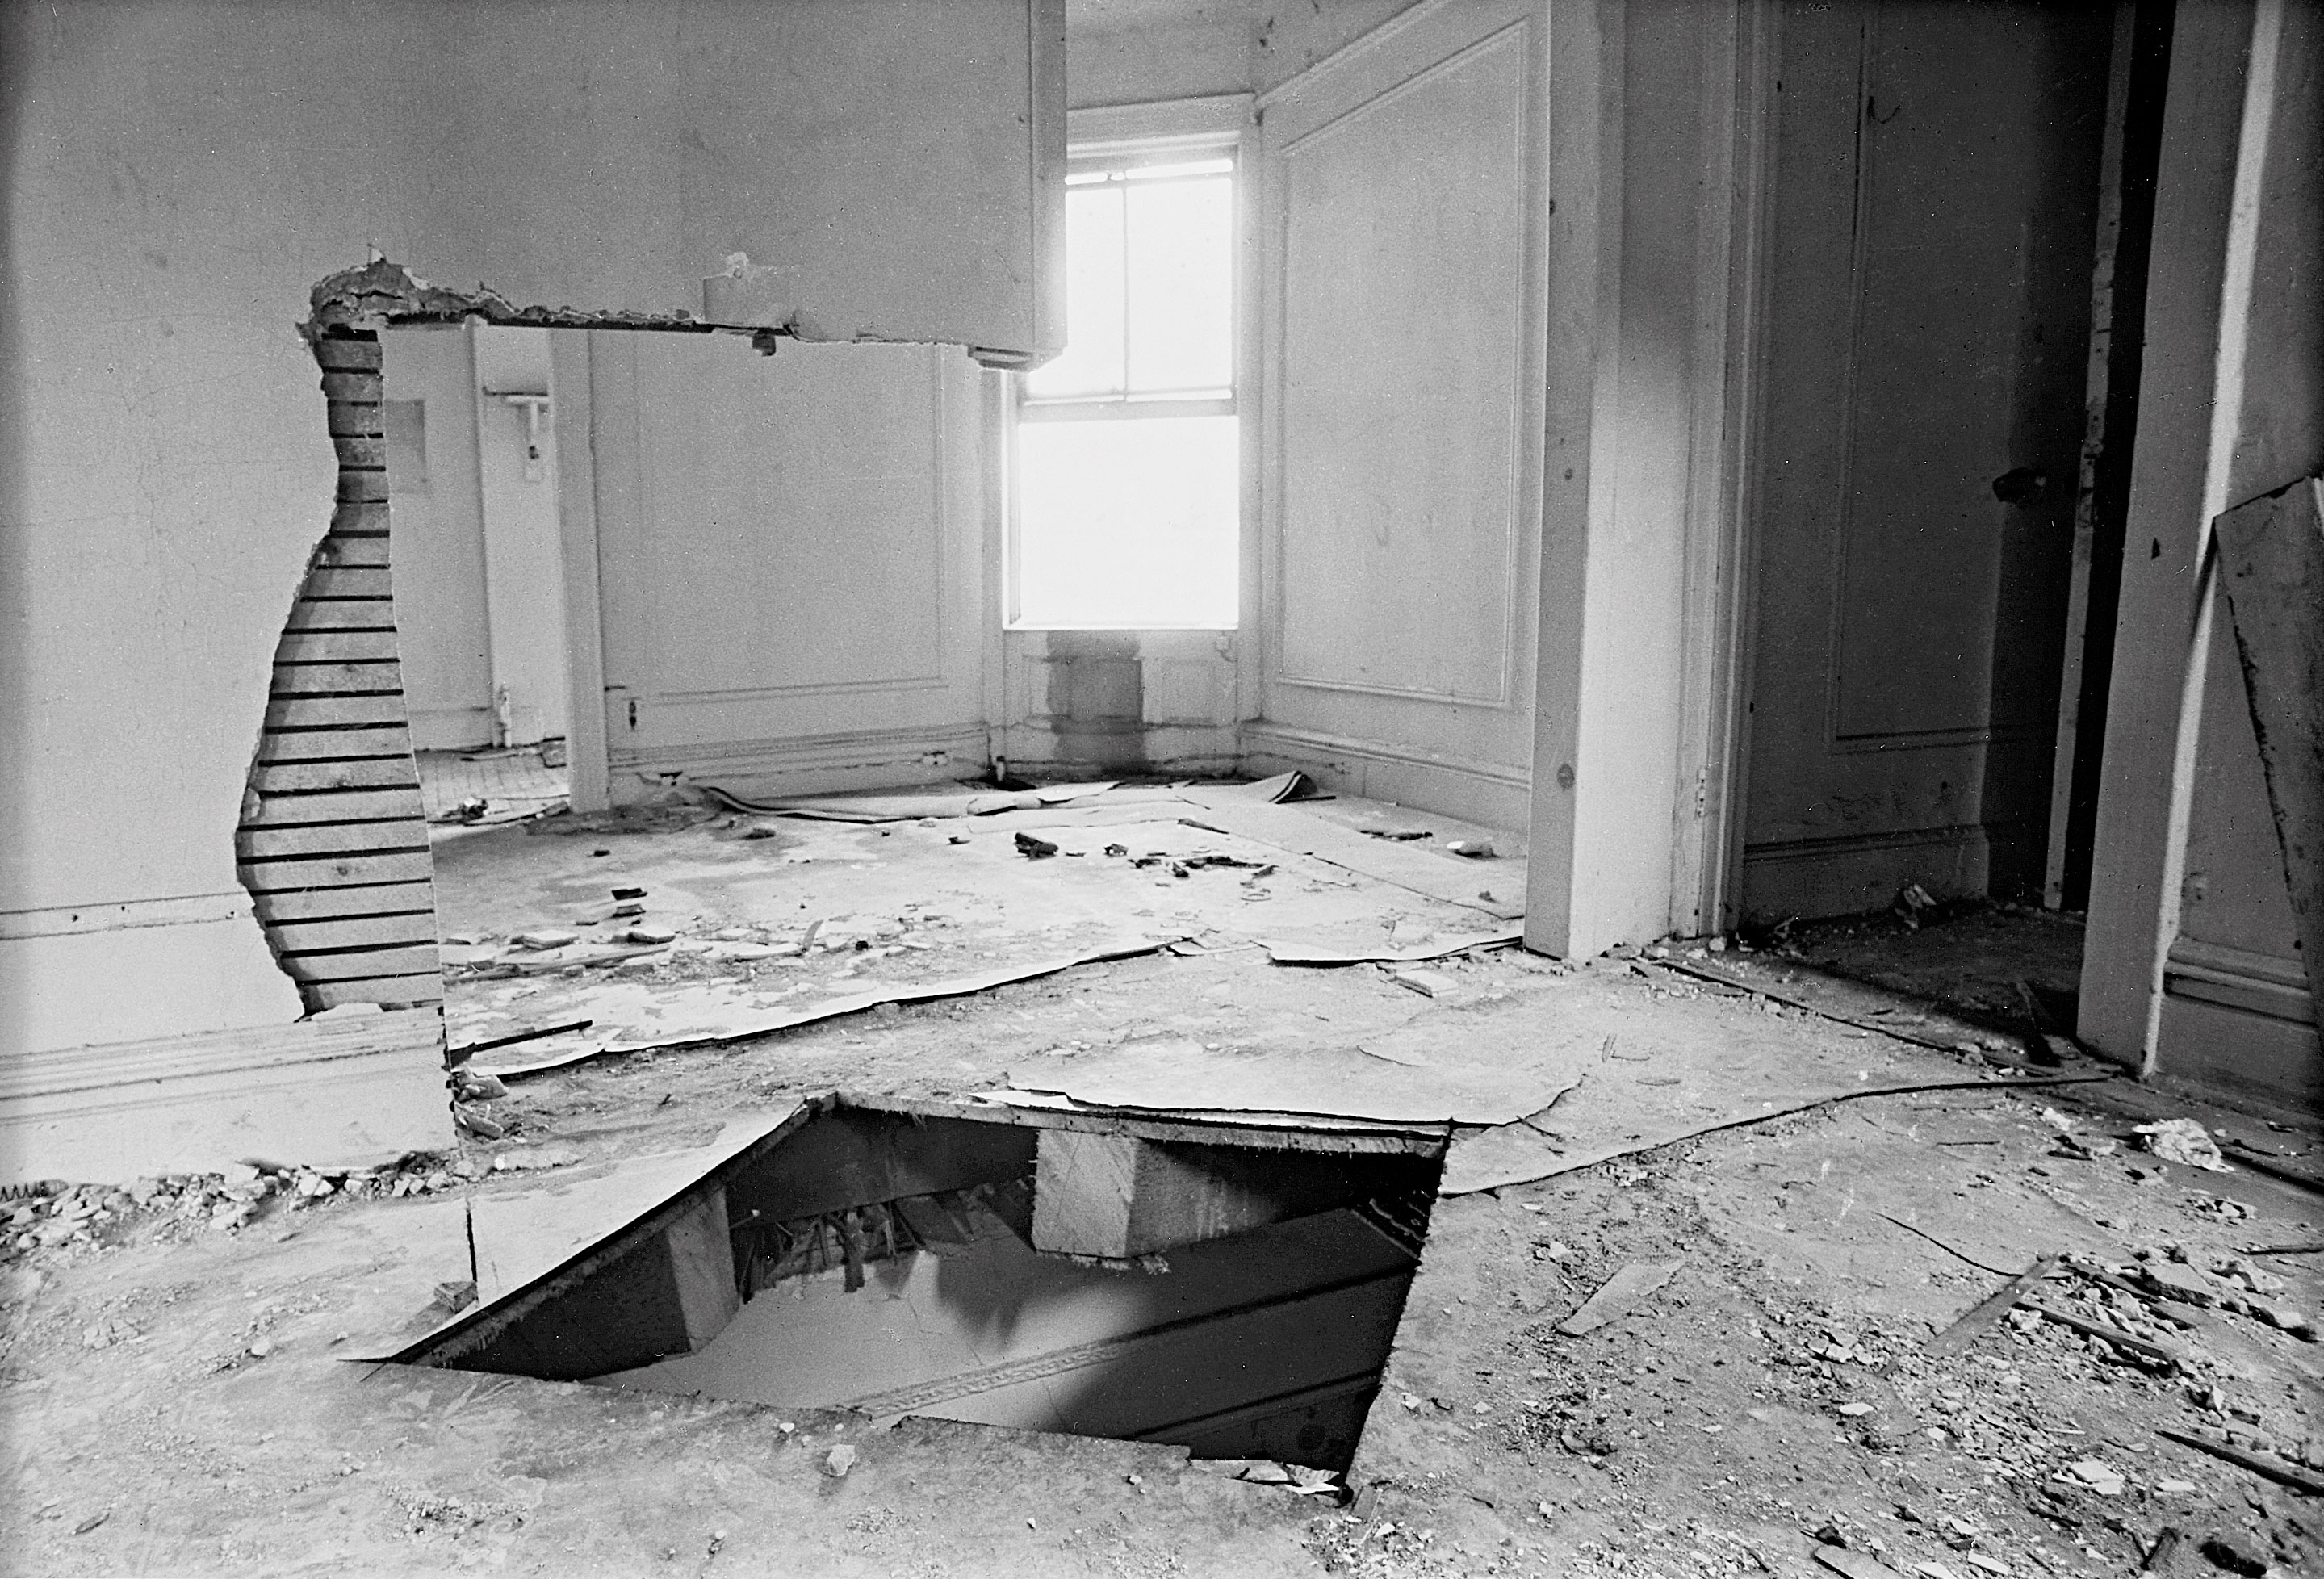 Revisiting Gordon Matta-Clark's Fusion Of Art, Architecture & Anarchy